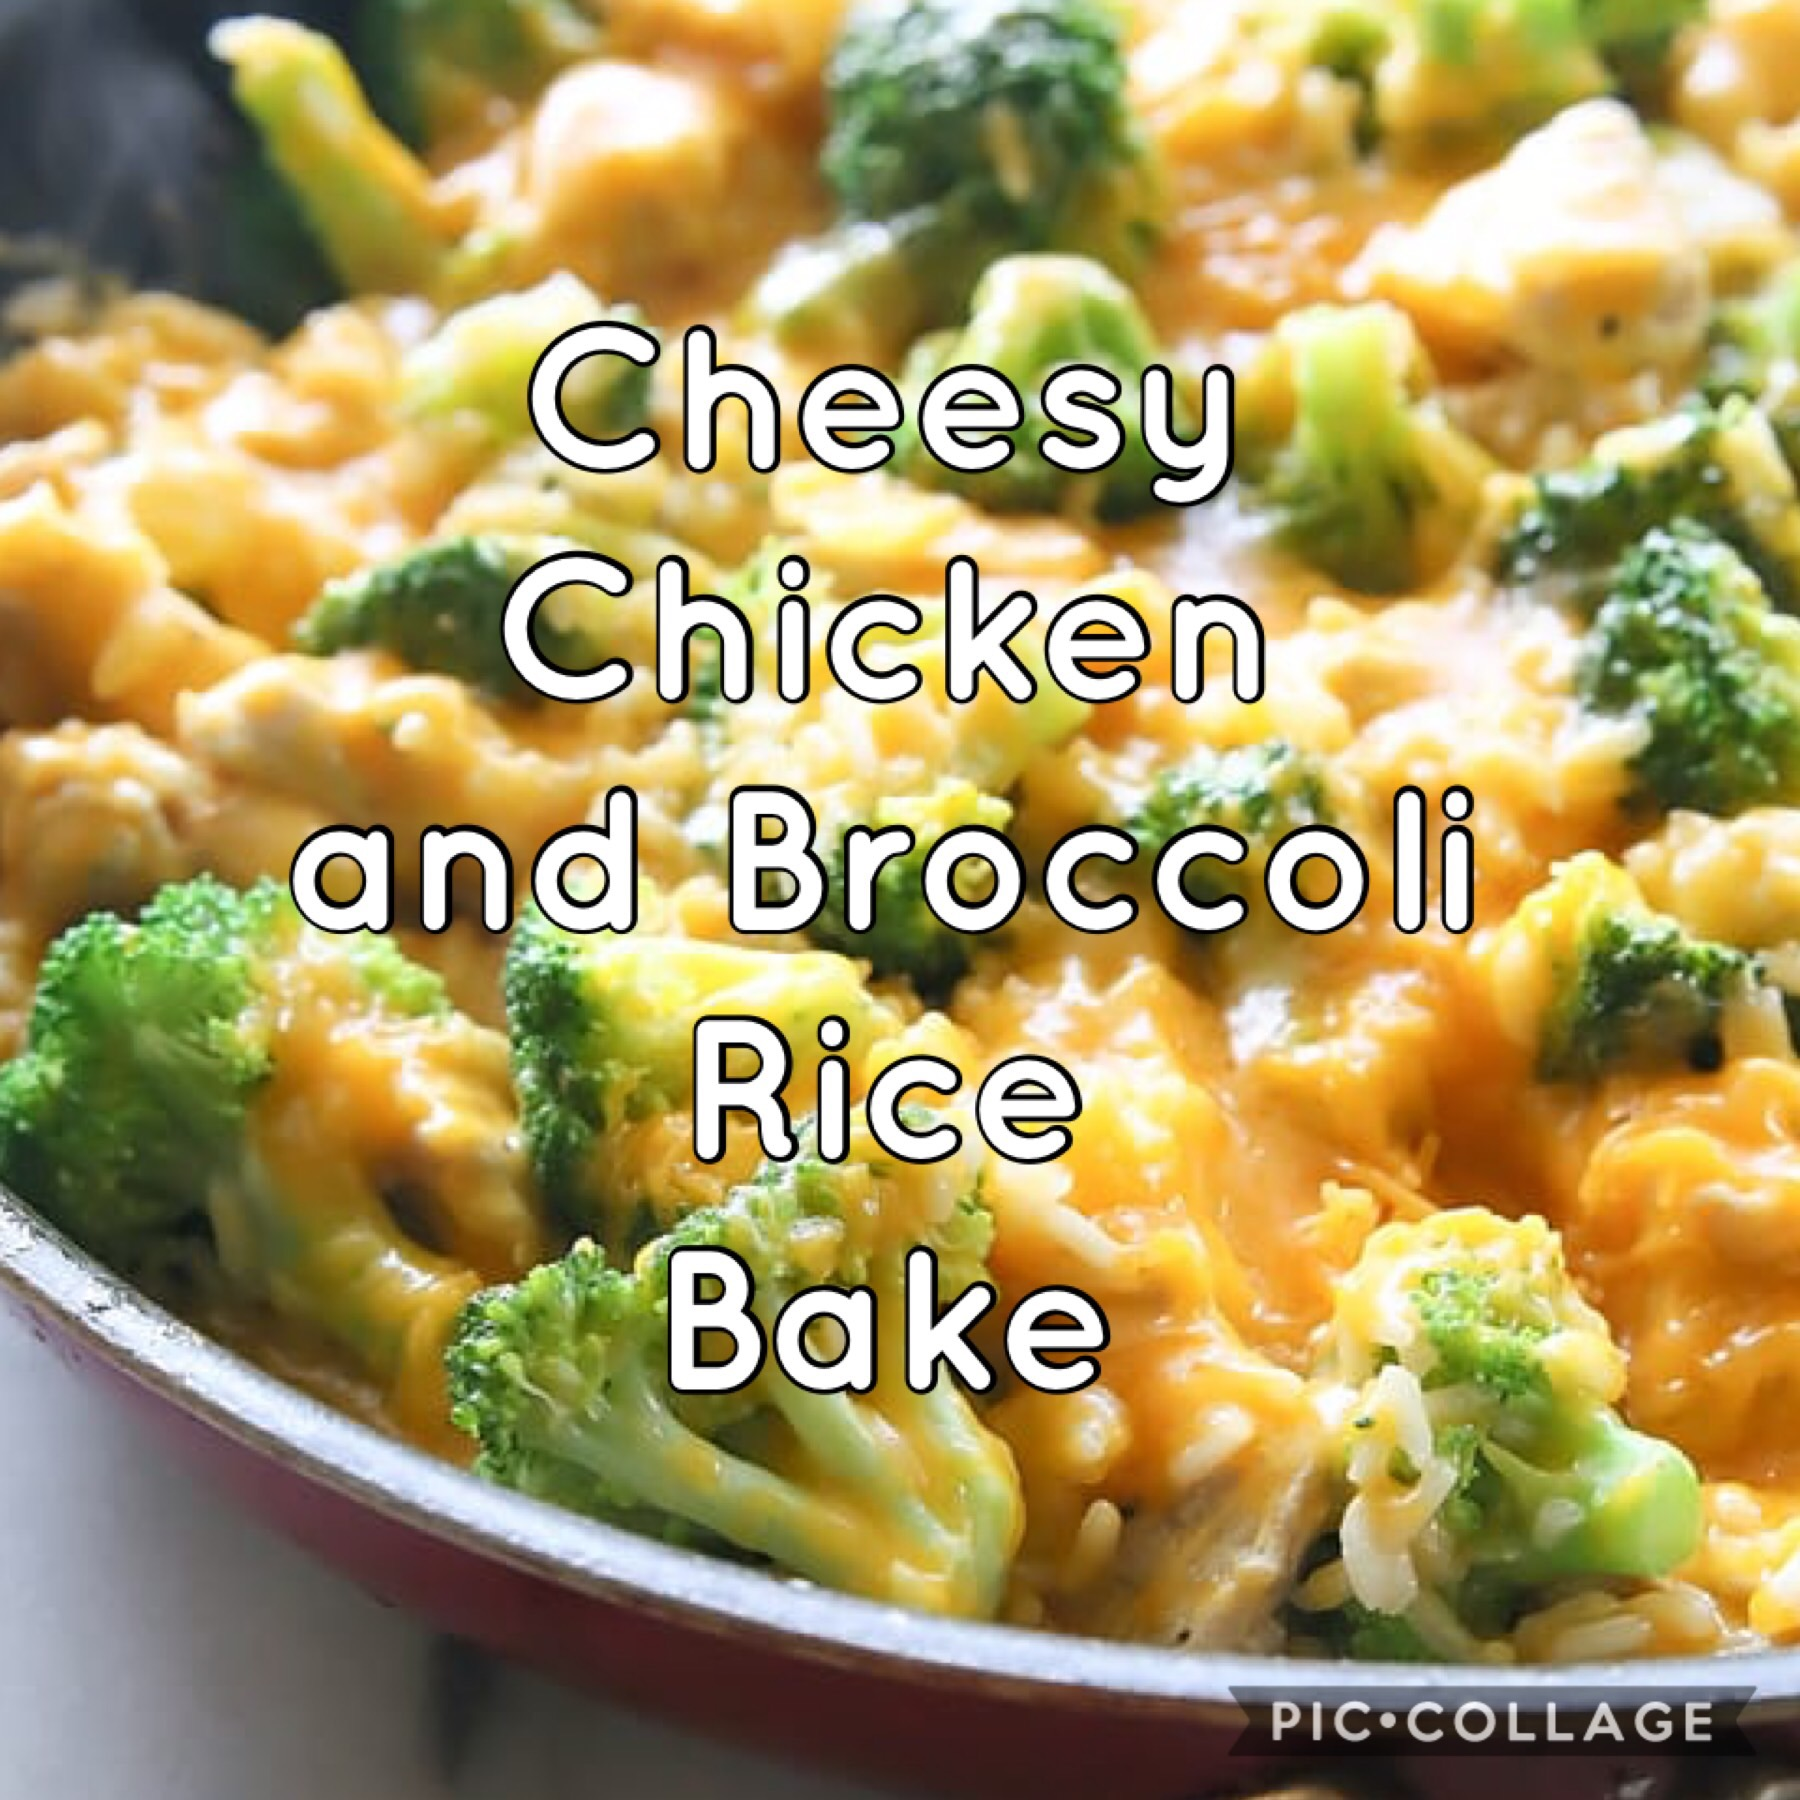 - Add some chopped steamed broccoli and sharp cheddar cheese for a simple and flavor packed nutritious meal.